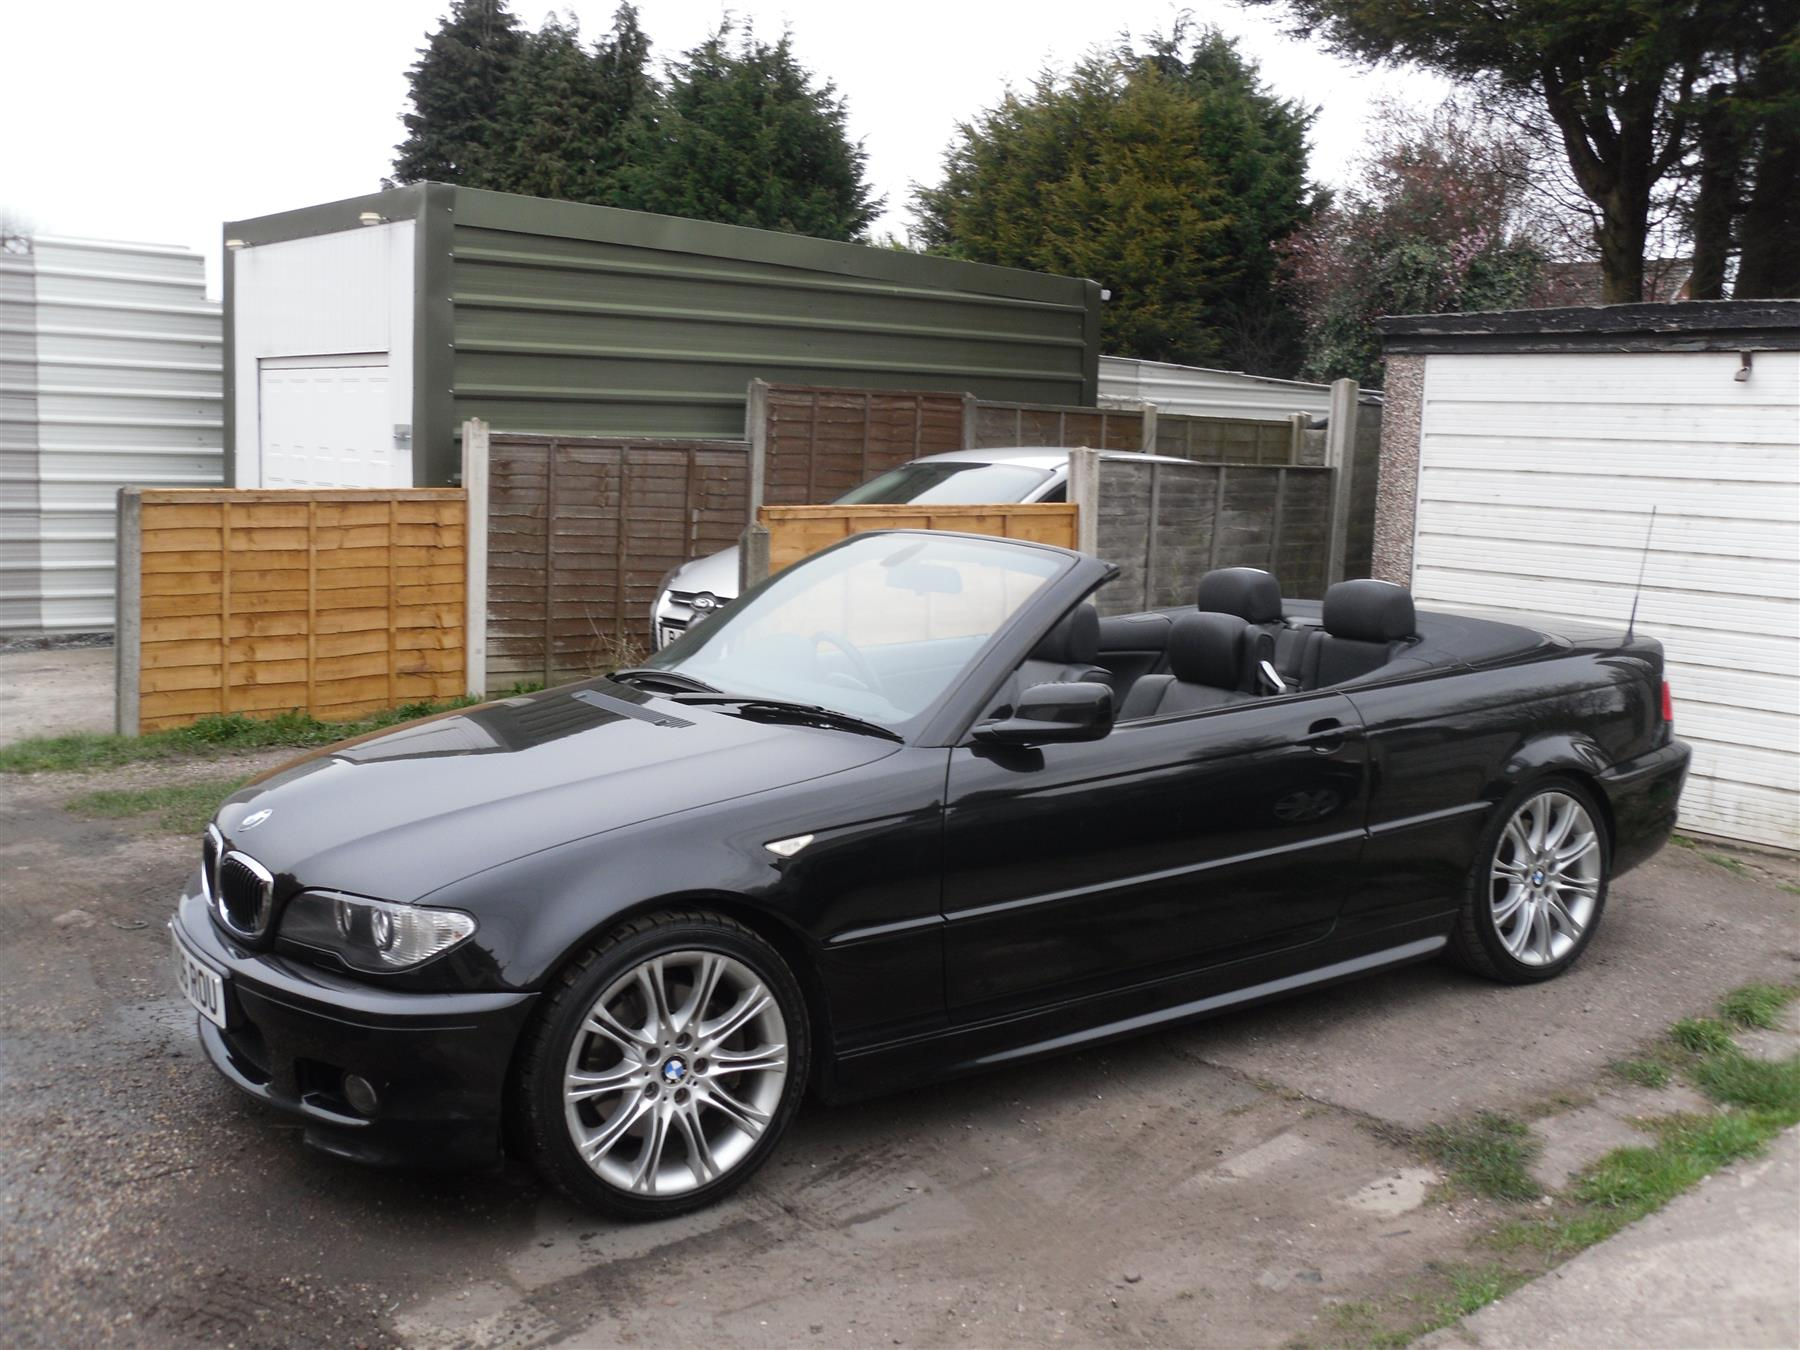 BMW 3 series 330Ci 2006 photo - 10